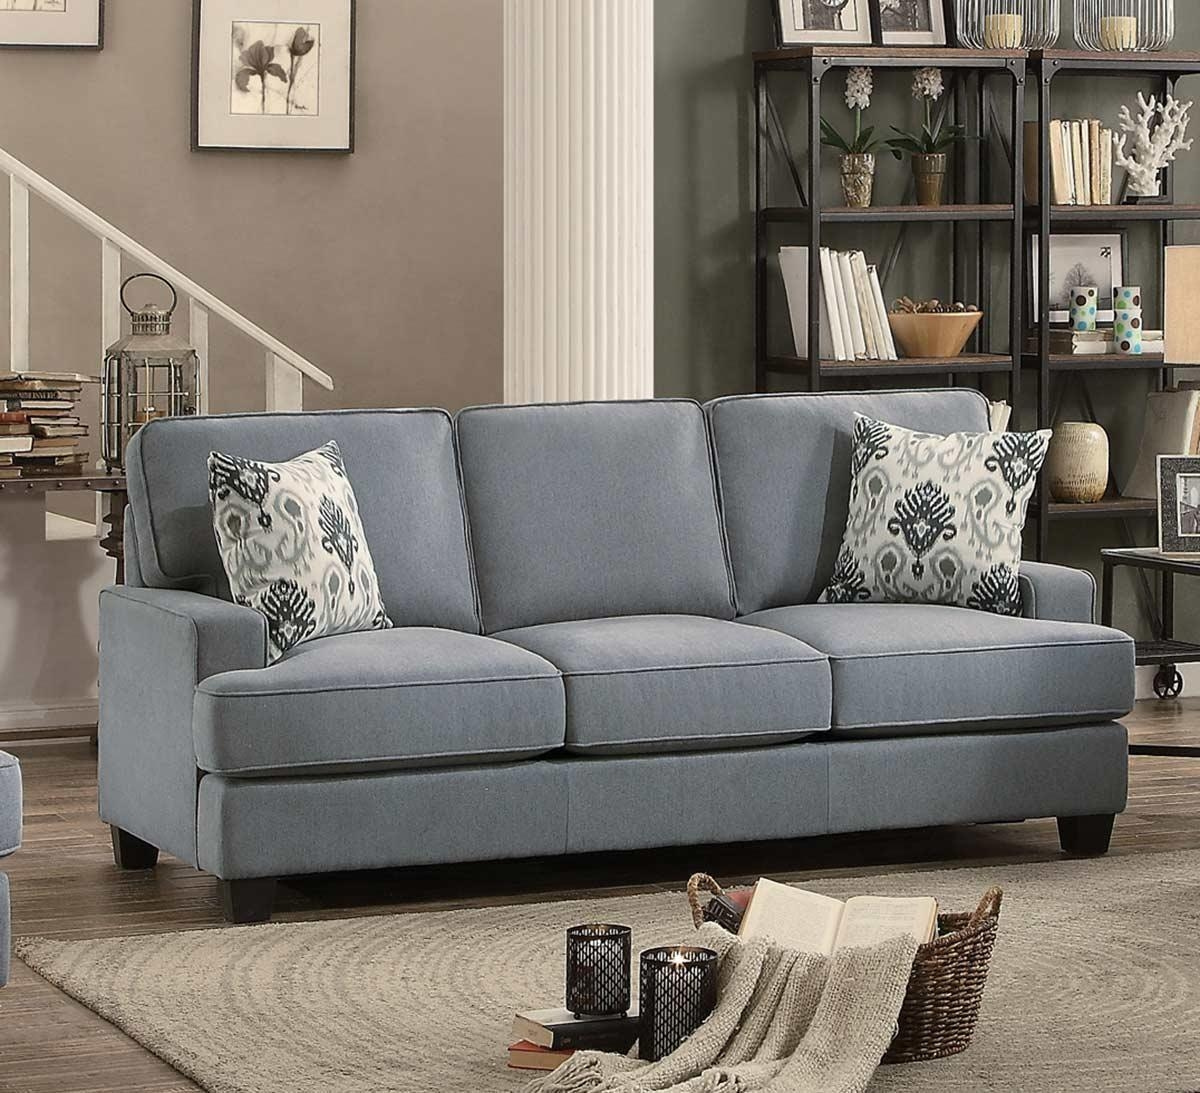 Homelegance Kenner Sofa Set – Gray Fabric 8245Gy Sofa Set With Regard To Homelegance Sofas (View 18 of 20)